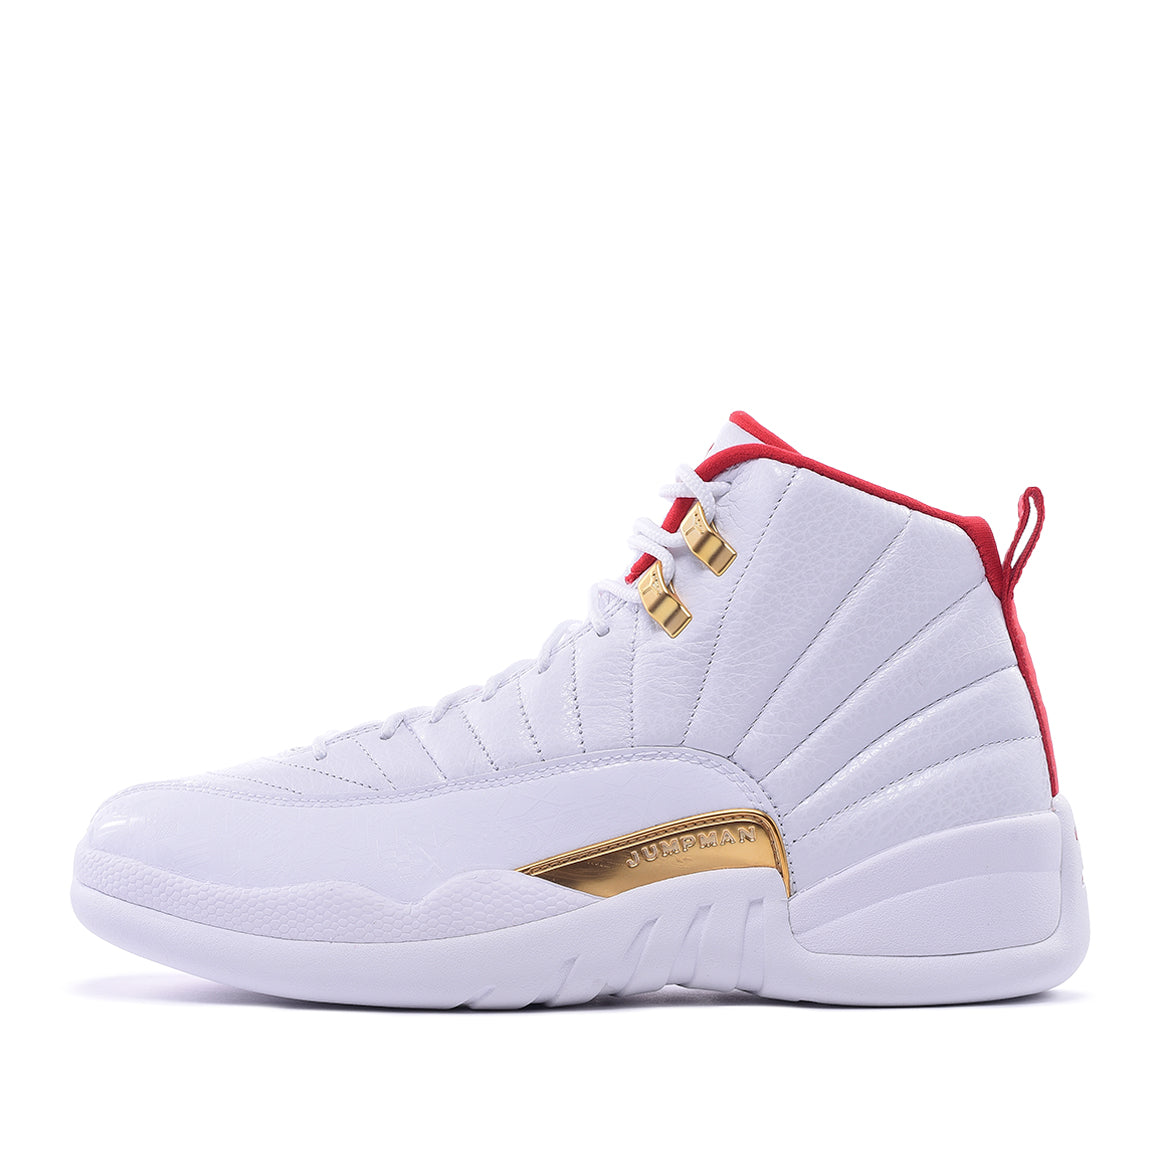 premium selection d9d81 db068 AIR JORDAN 12 RETRO